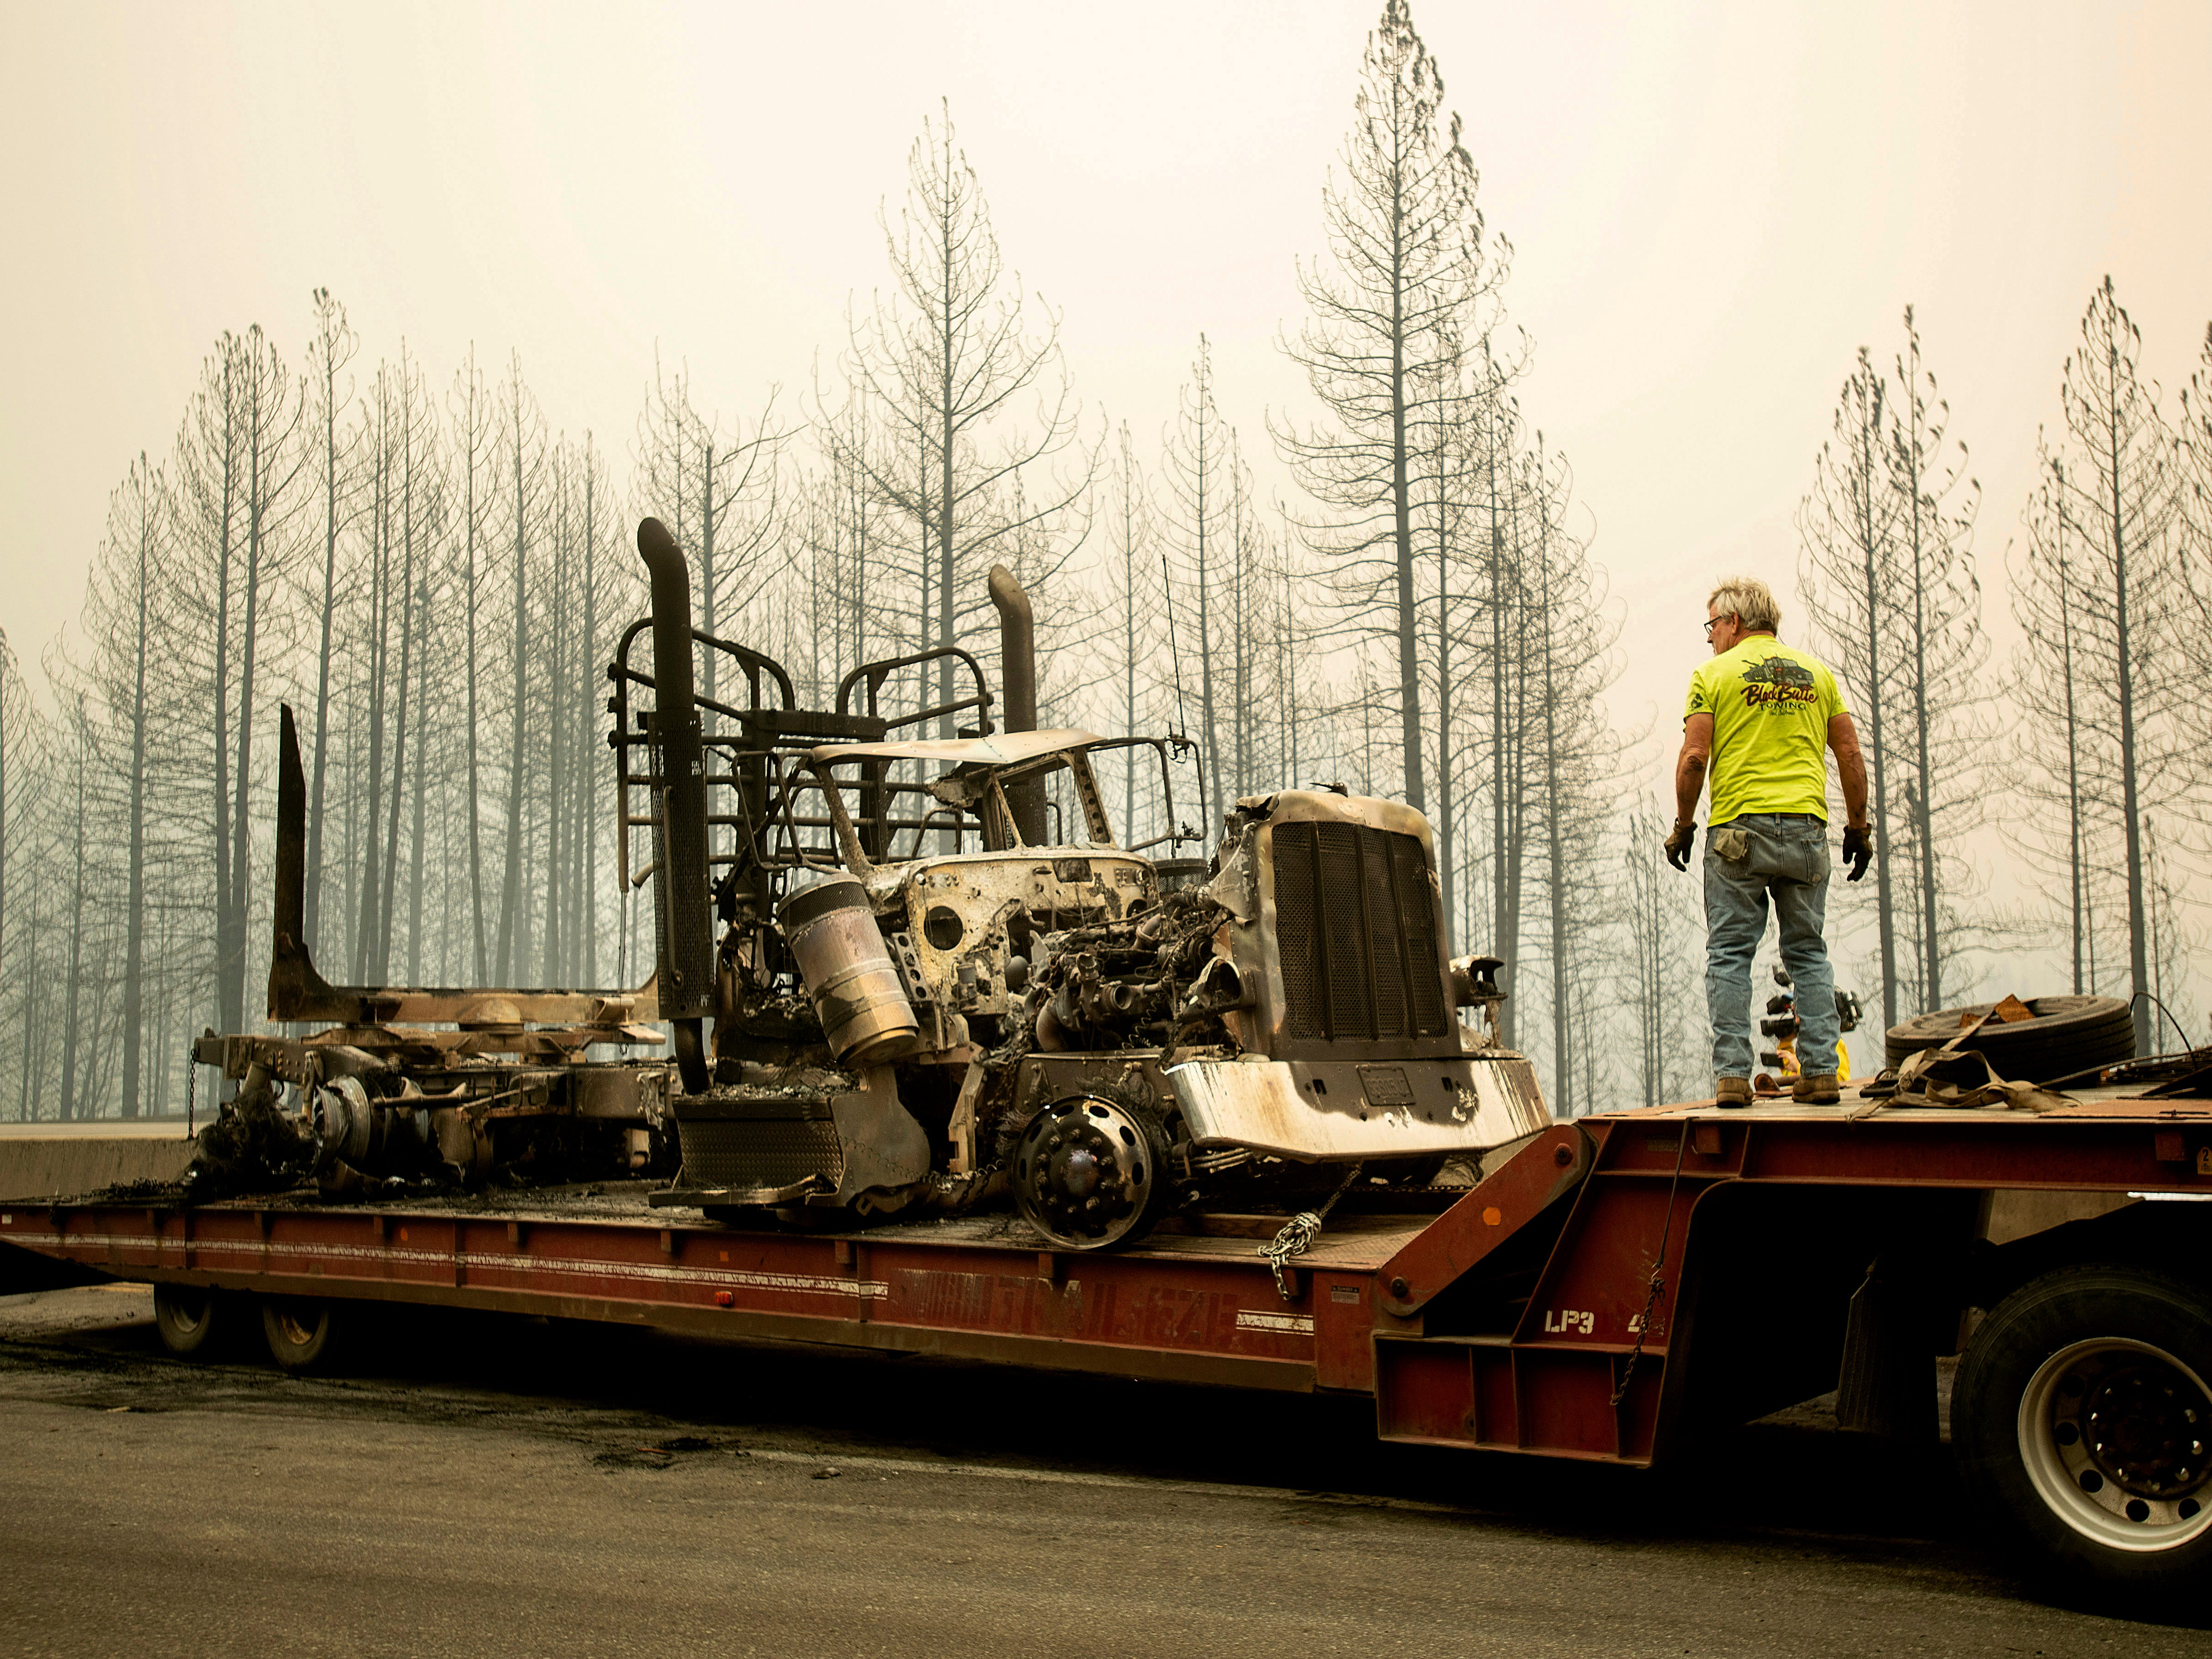 Bruce Palmer prepares to tow a truck scorched by the Delta Fire on Interstate 5 in the Shasta-Trinity National Forest, Calif., near Shasta Lake on Thursday, Sept. 6, 2018. The highway remains closed to traffic in both directions as crews battle the blaze. (AP Photo/Noah Berger) ORG XMIT: CANB101